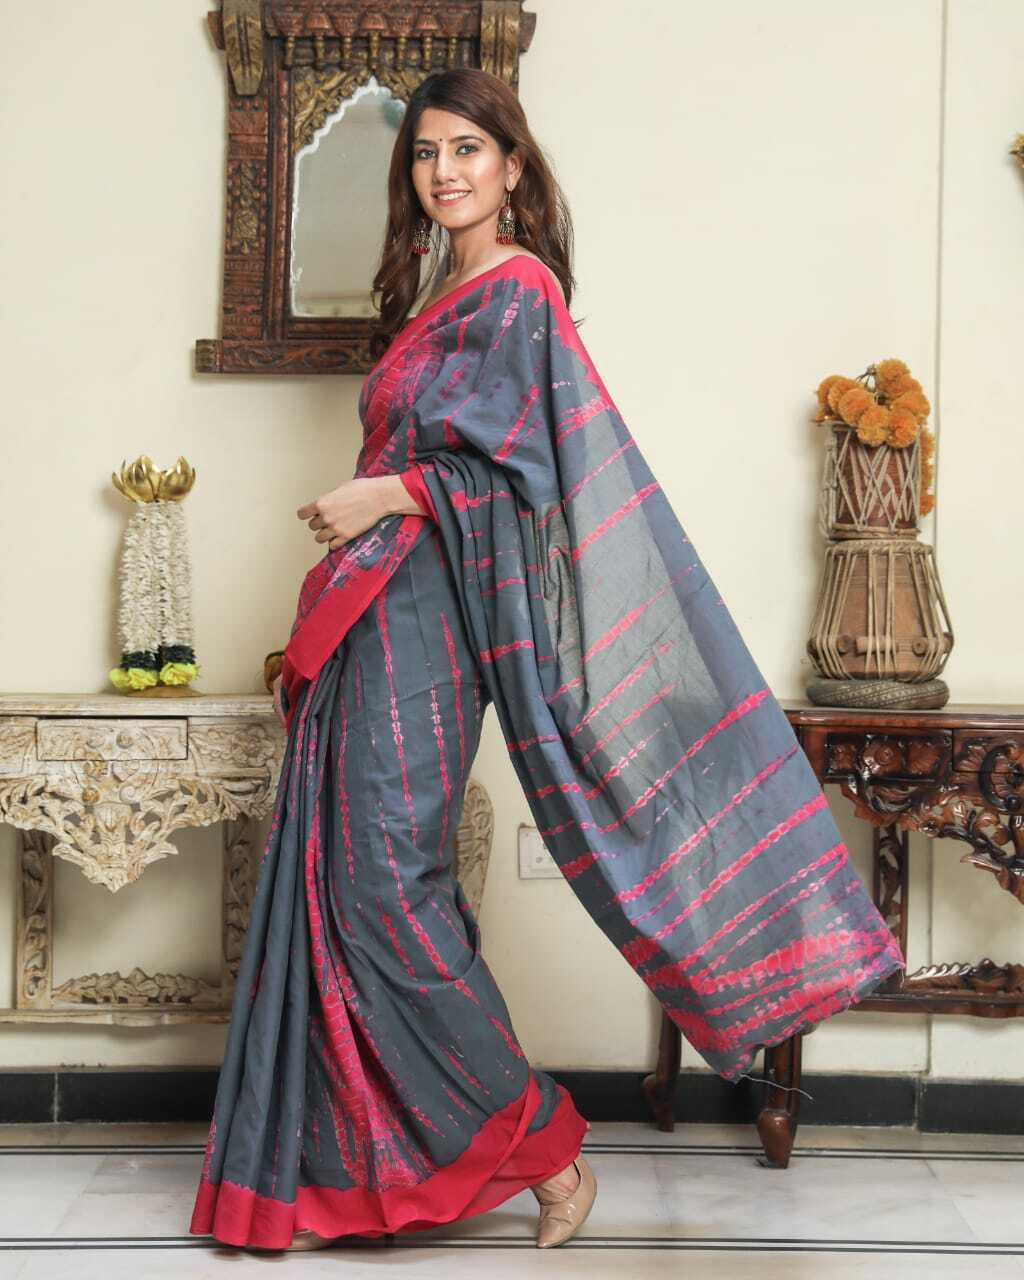 Exclusive Indian Designer Handprinted Cotton Saree Gift For Women With Blouse